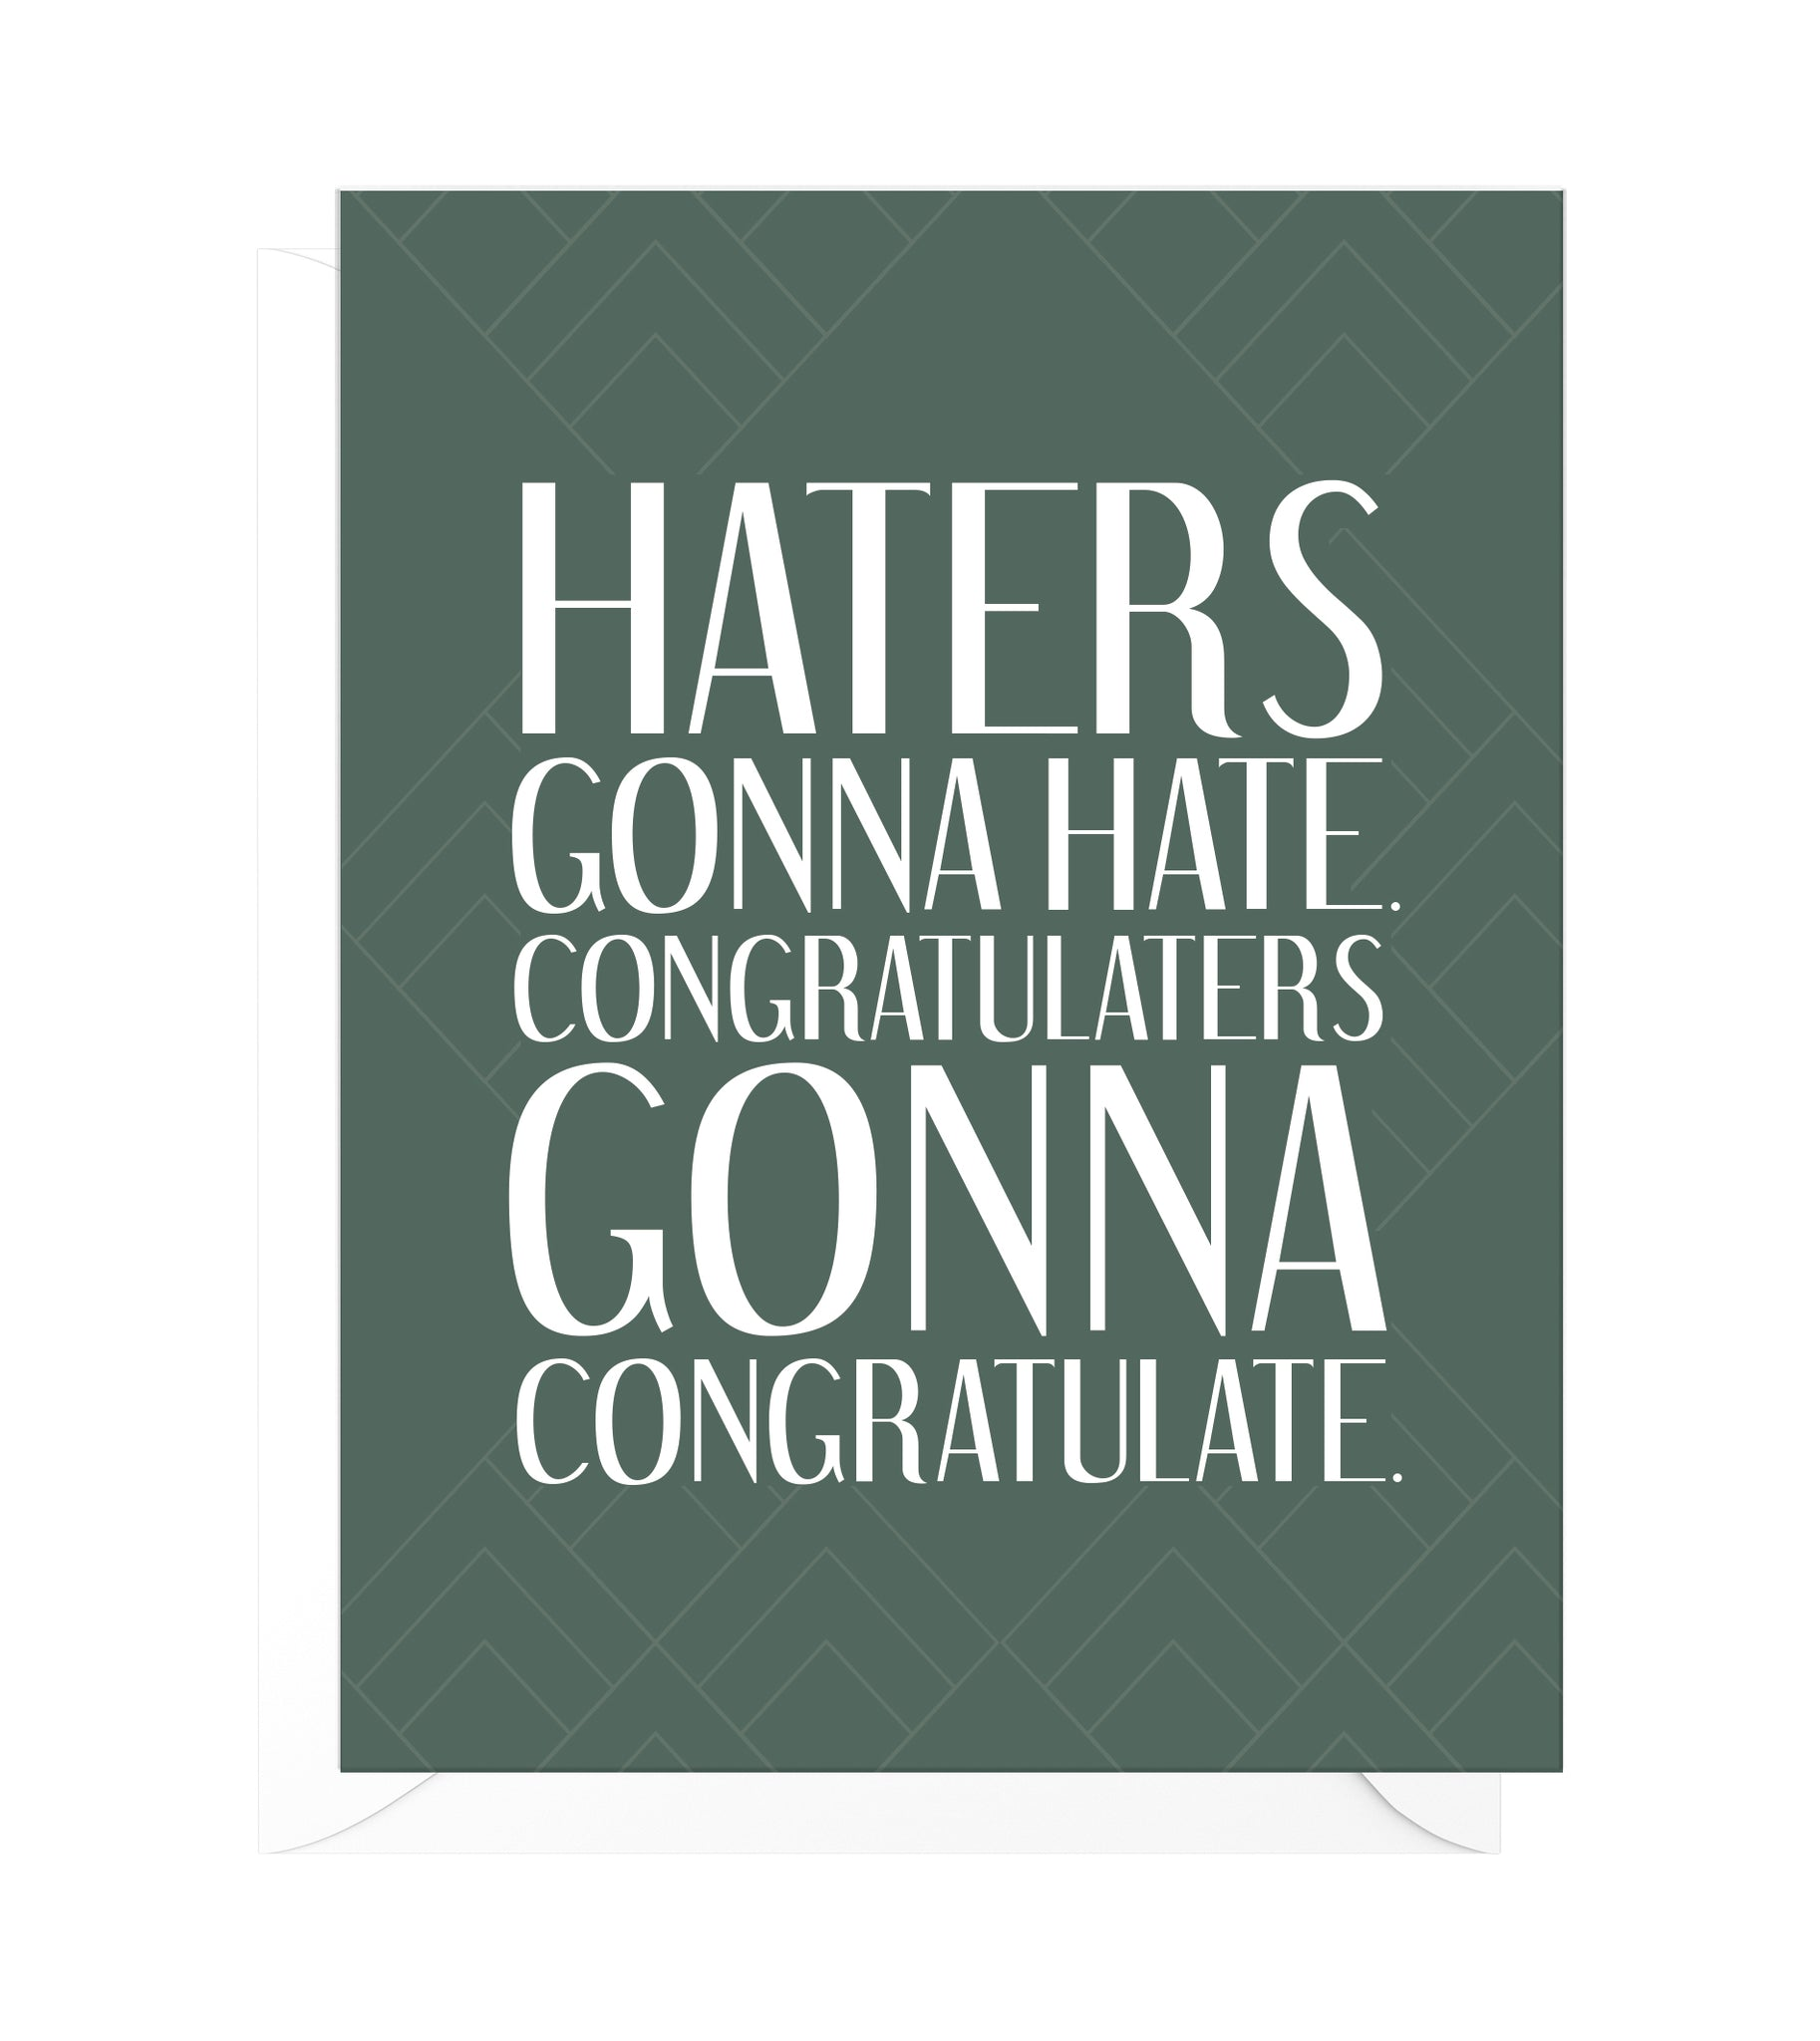 Haters Gonna Hate Funny Congratulations Card